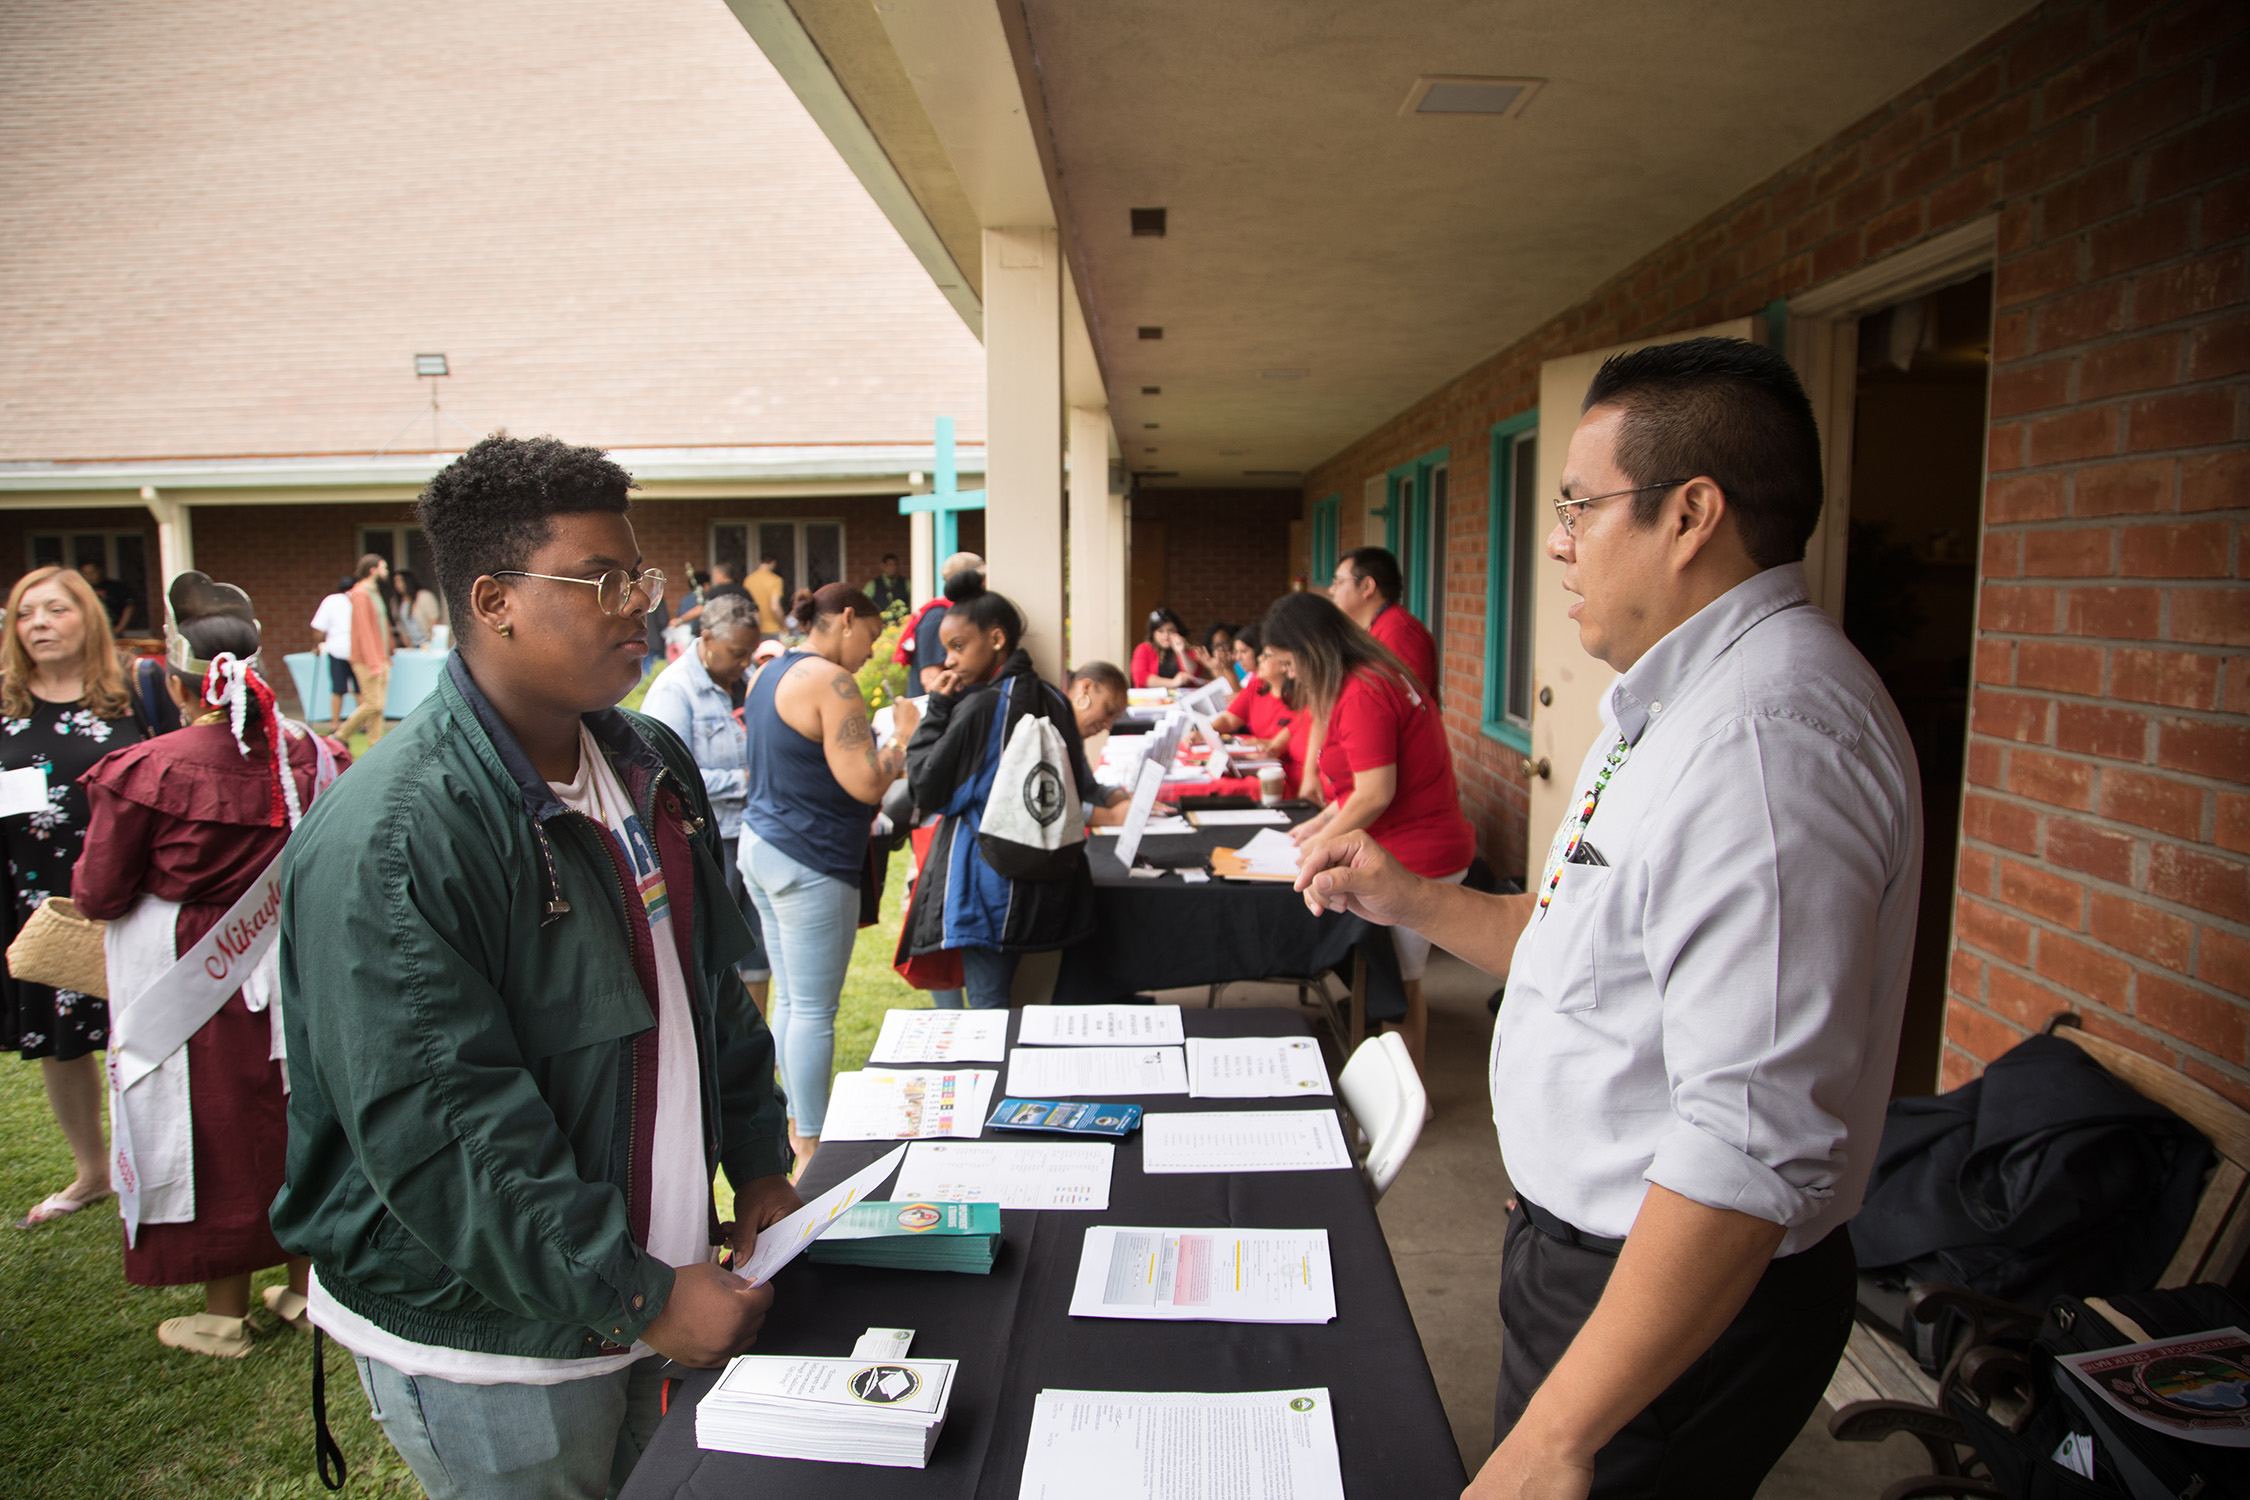 Muscogee (Creek) Nation welcomes California area citizens to annual gathering